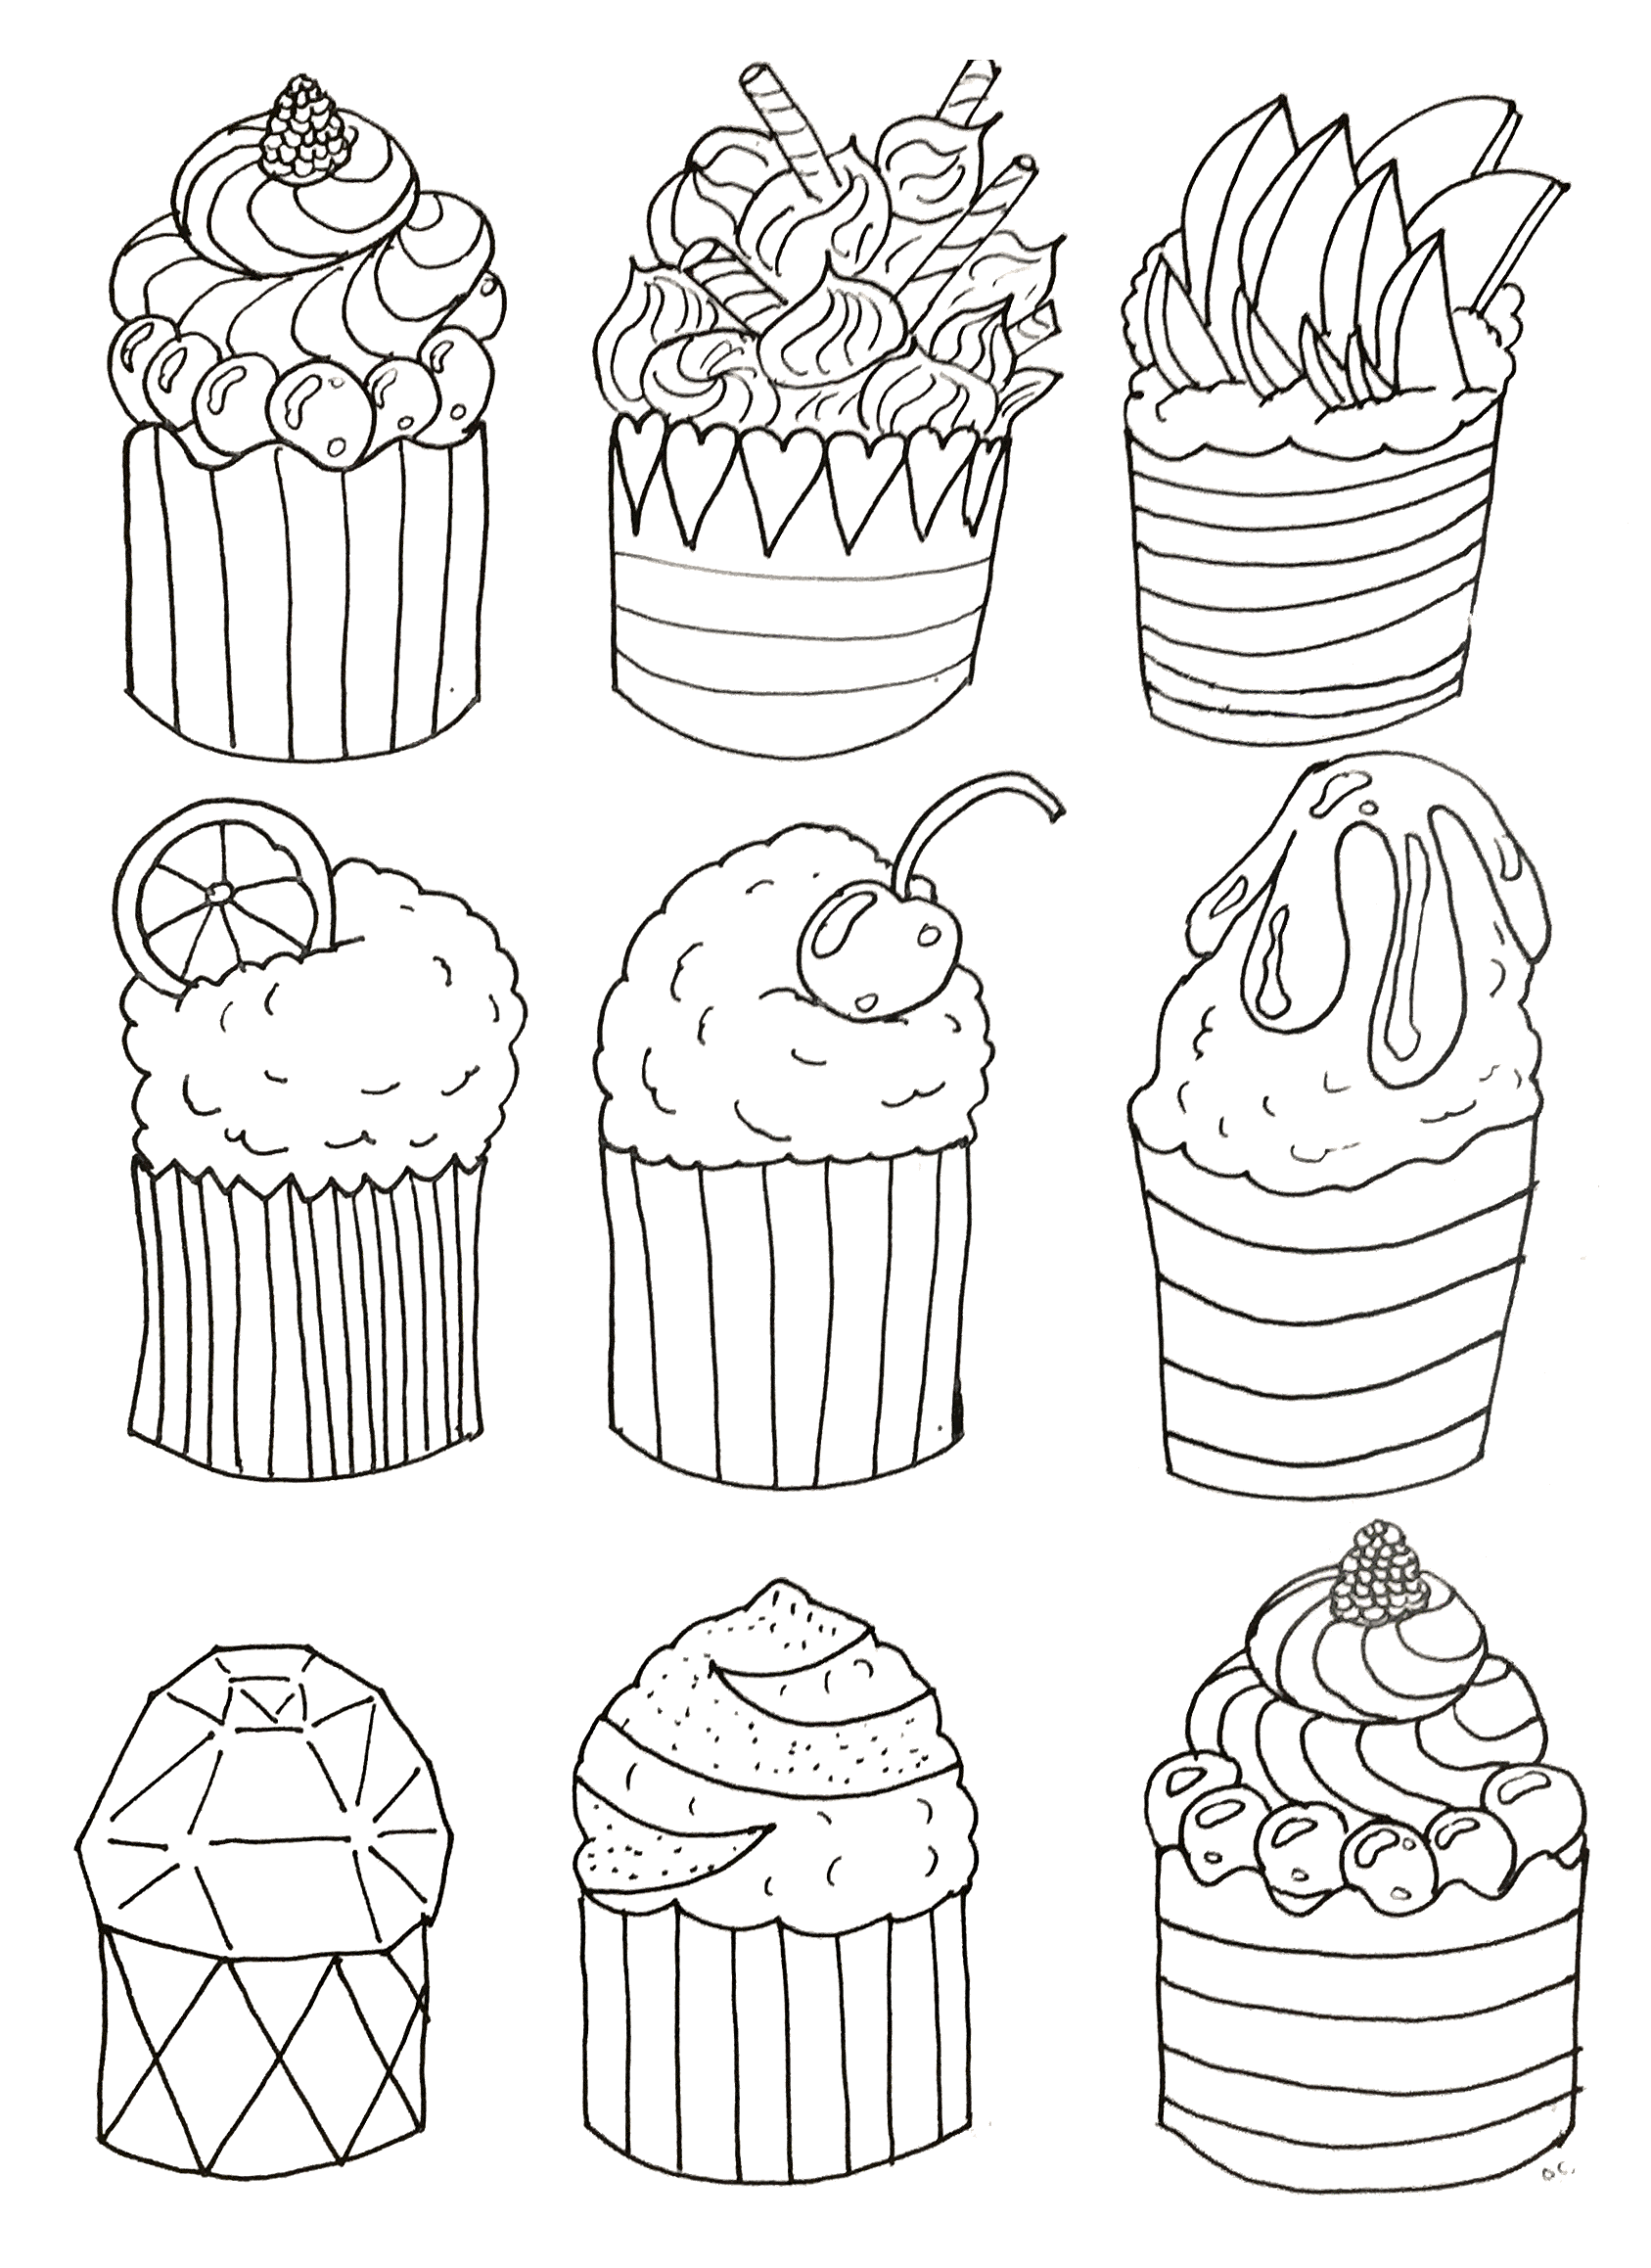 coloring-simple-cupcakes-by-olivier, From the gallery : Cup Cakes ...